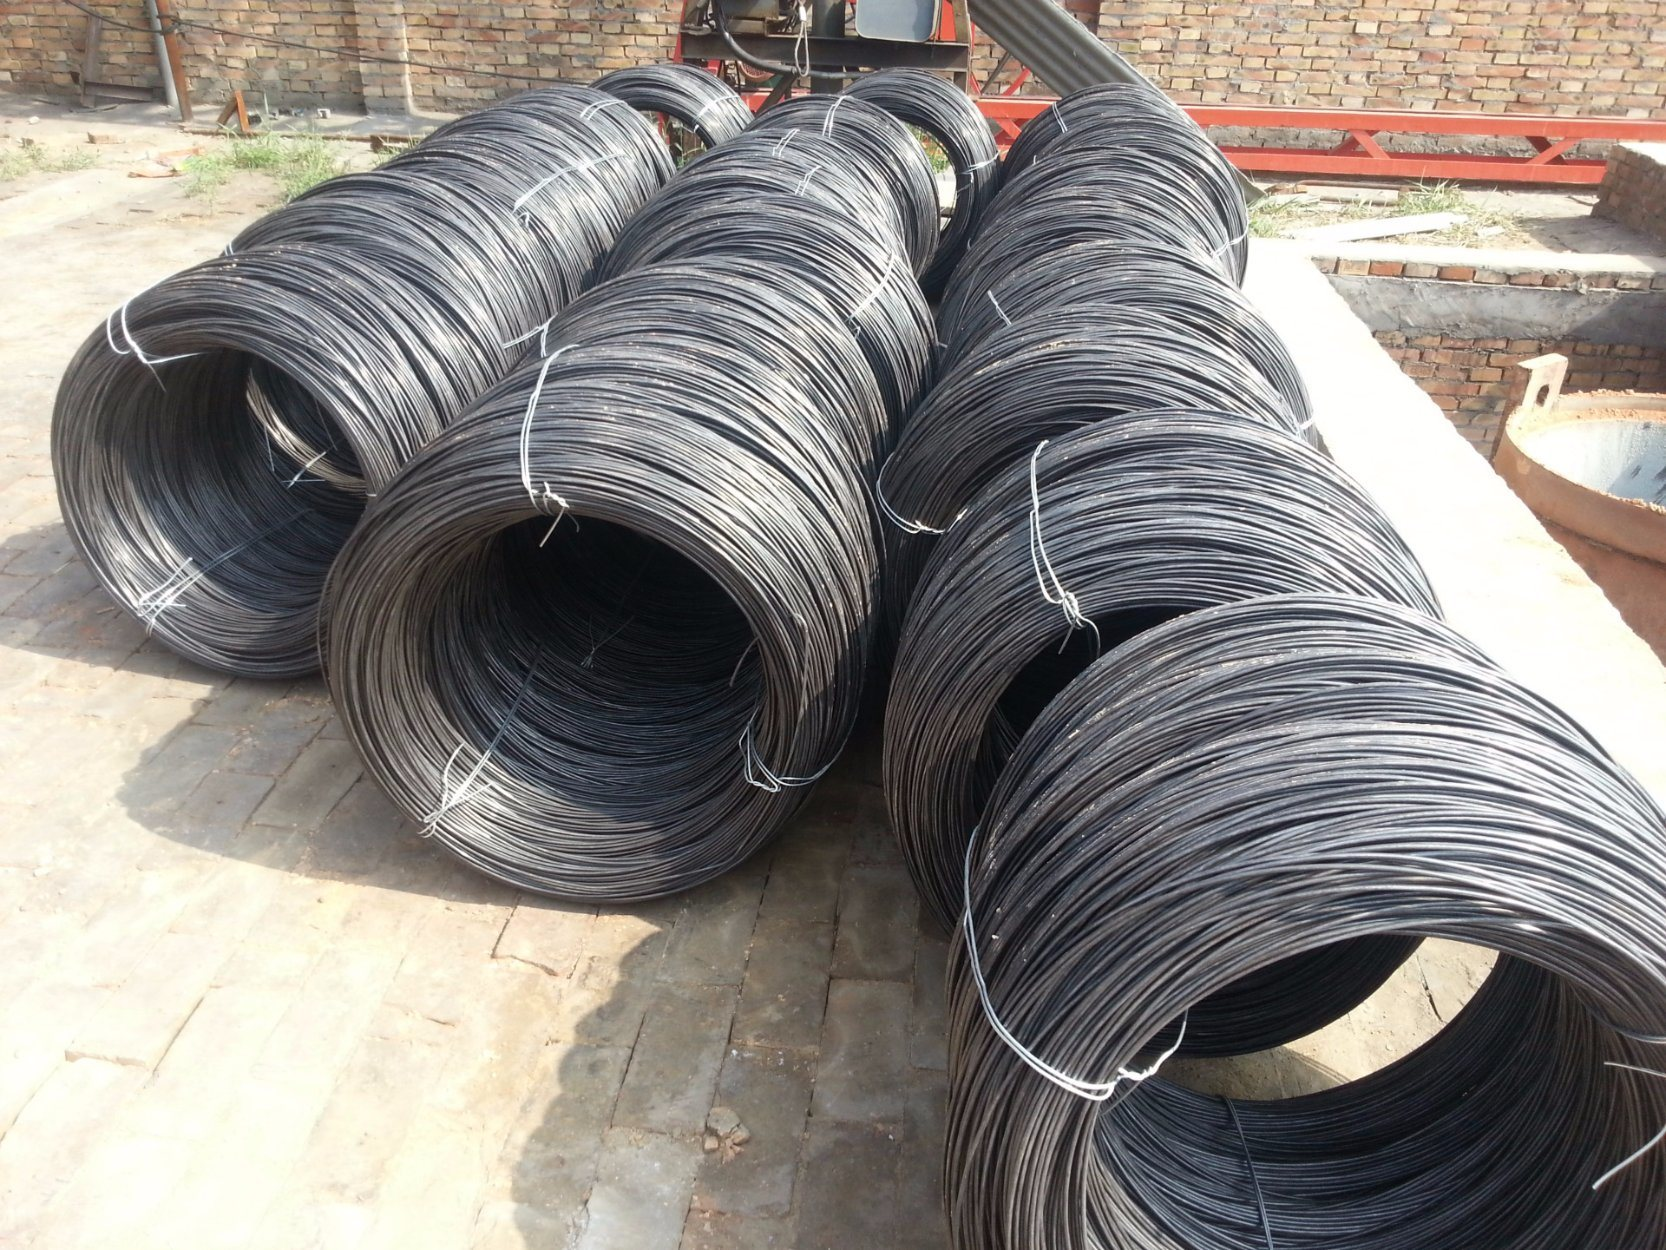 China Low Carbon Steel Black Iron Wire in Gauge 11 for Daily Use ...